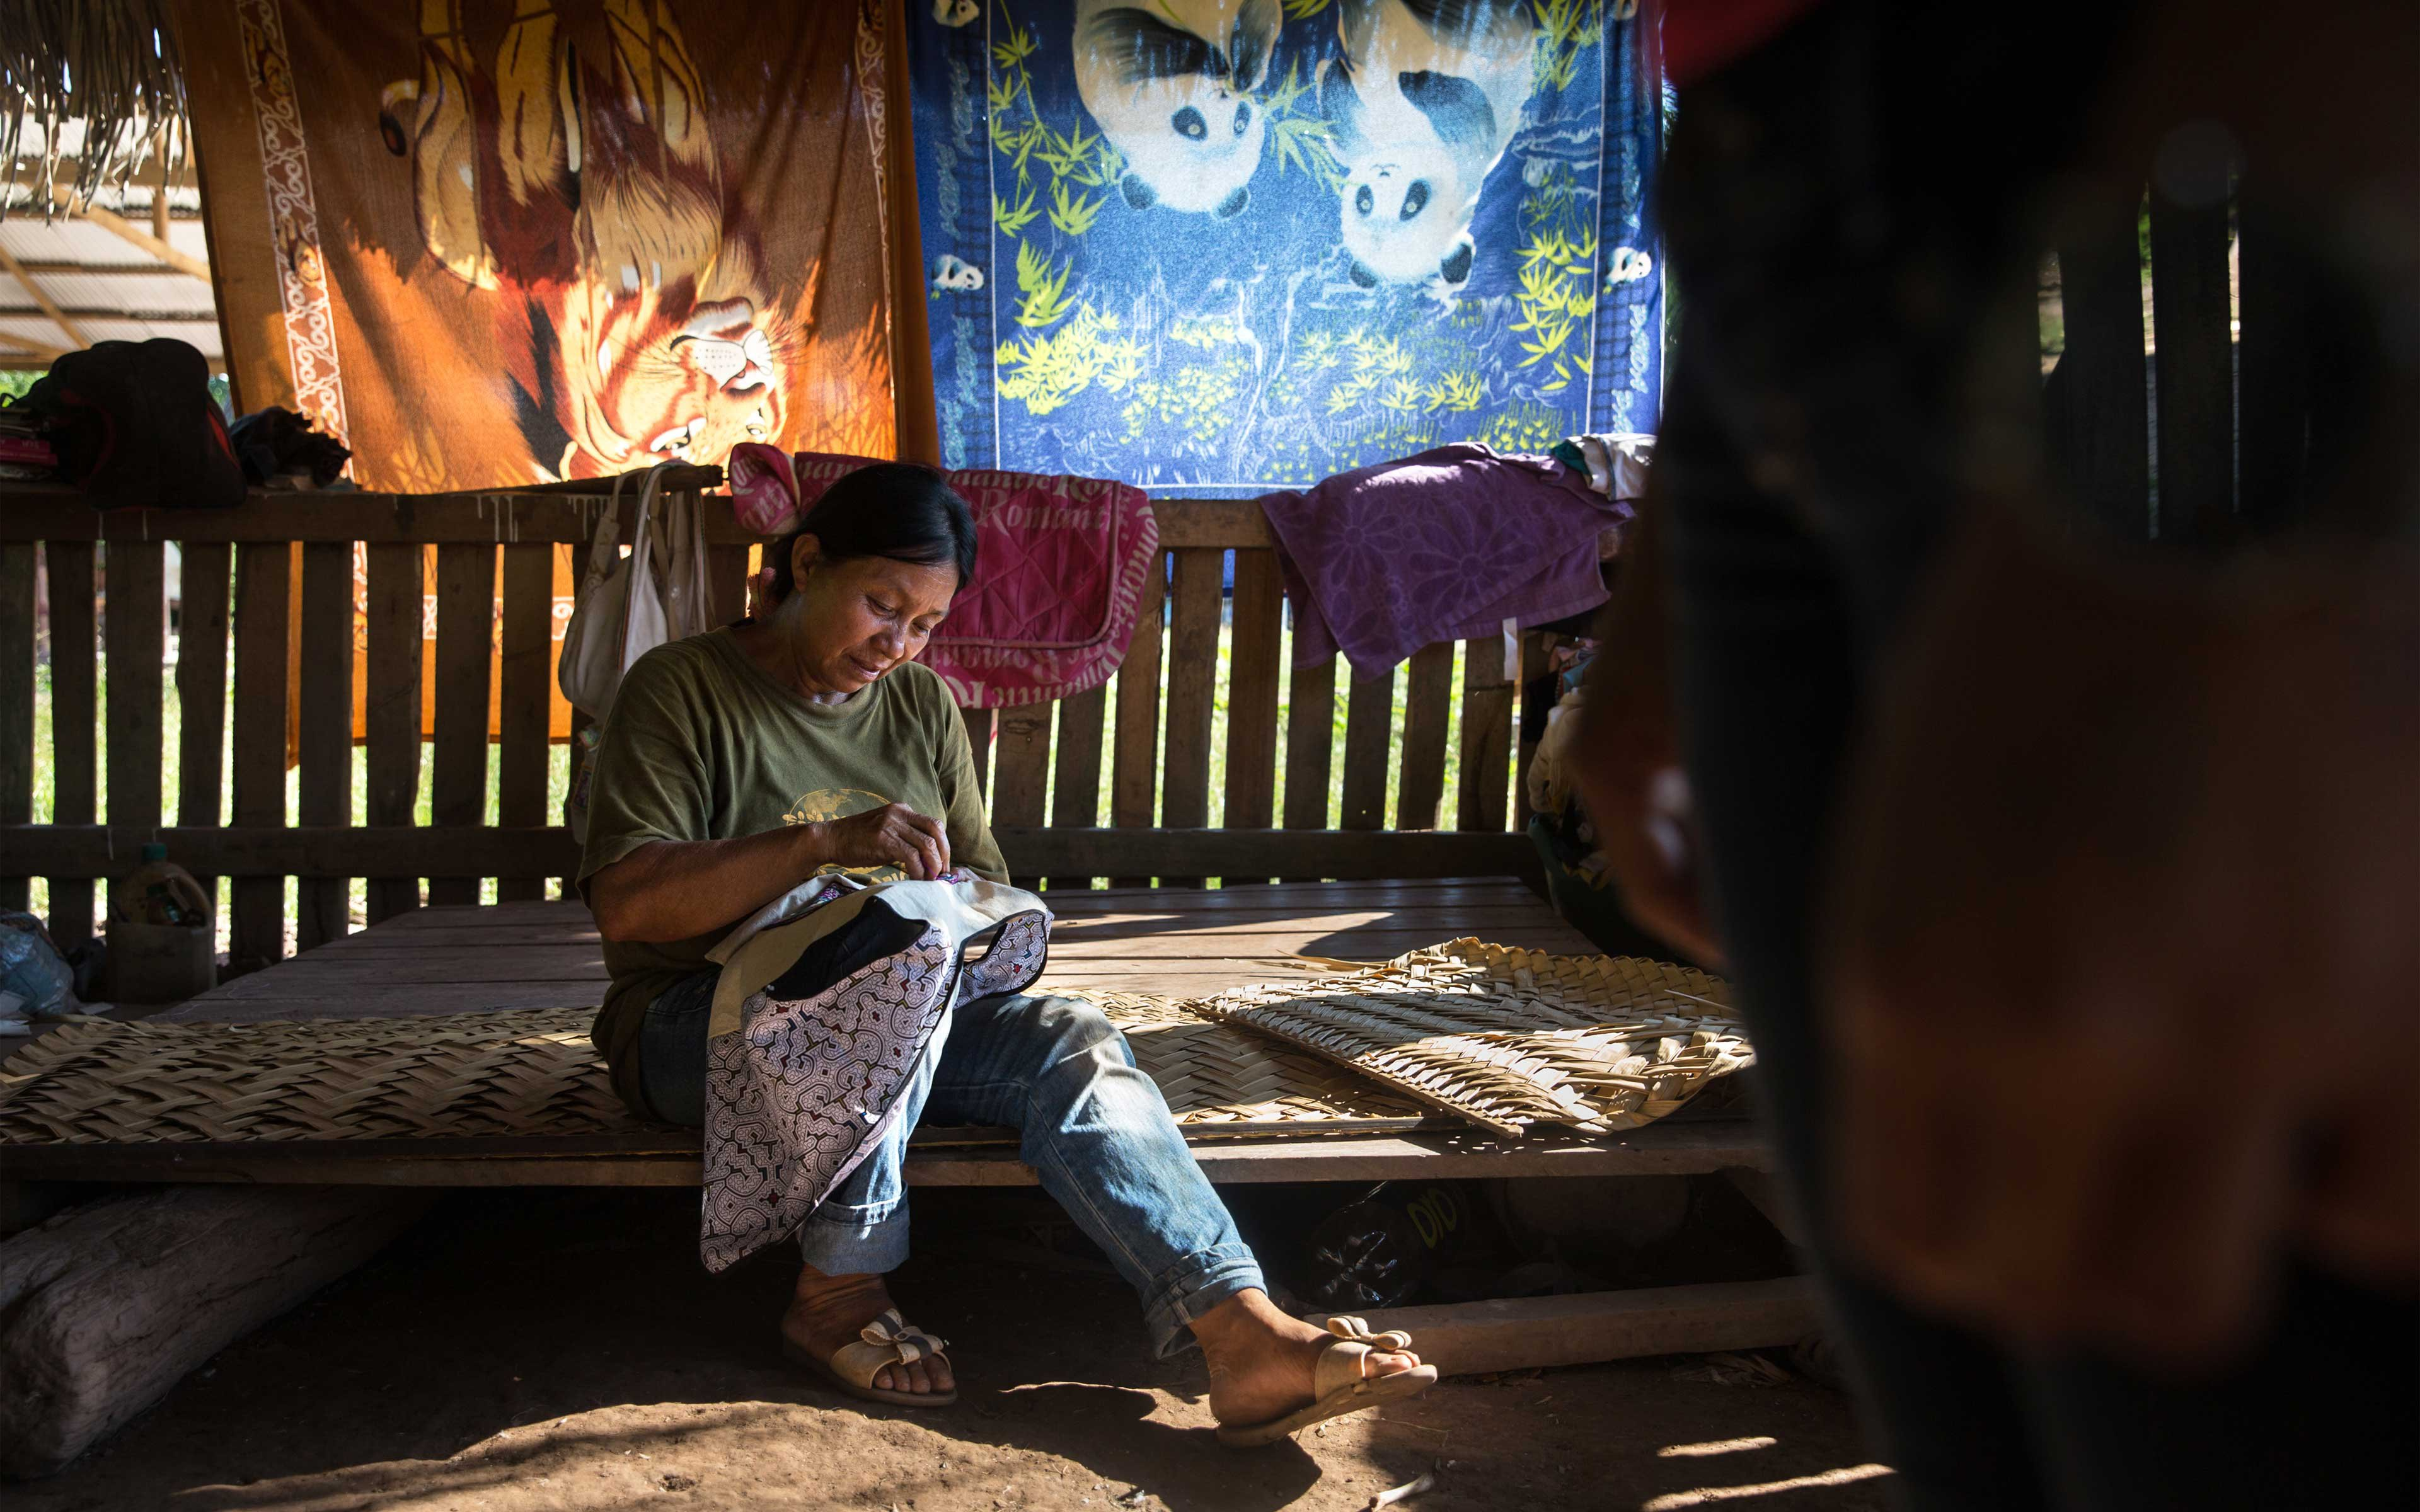 """Luisa Mori Gonzalez, 53, is a widow with three daughters and two granddaughters and one of the women leaders in Santa Clara de Uchunya. She says excluding families from nearby forest areas is creating problems: """"We're worried, where are we going to get our food? The forest was our market. How are we going to feed our kids?"""